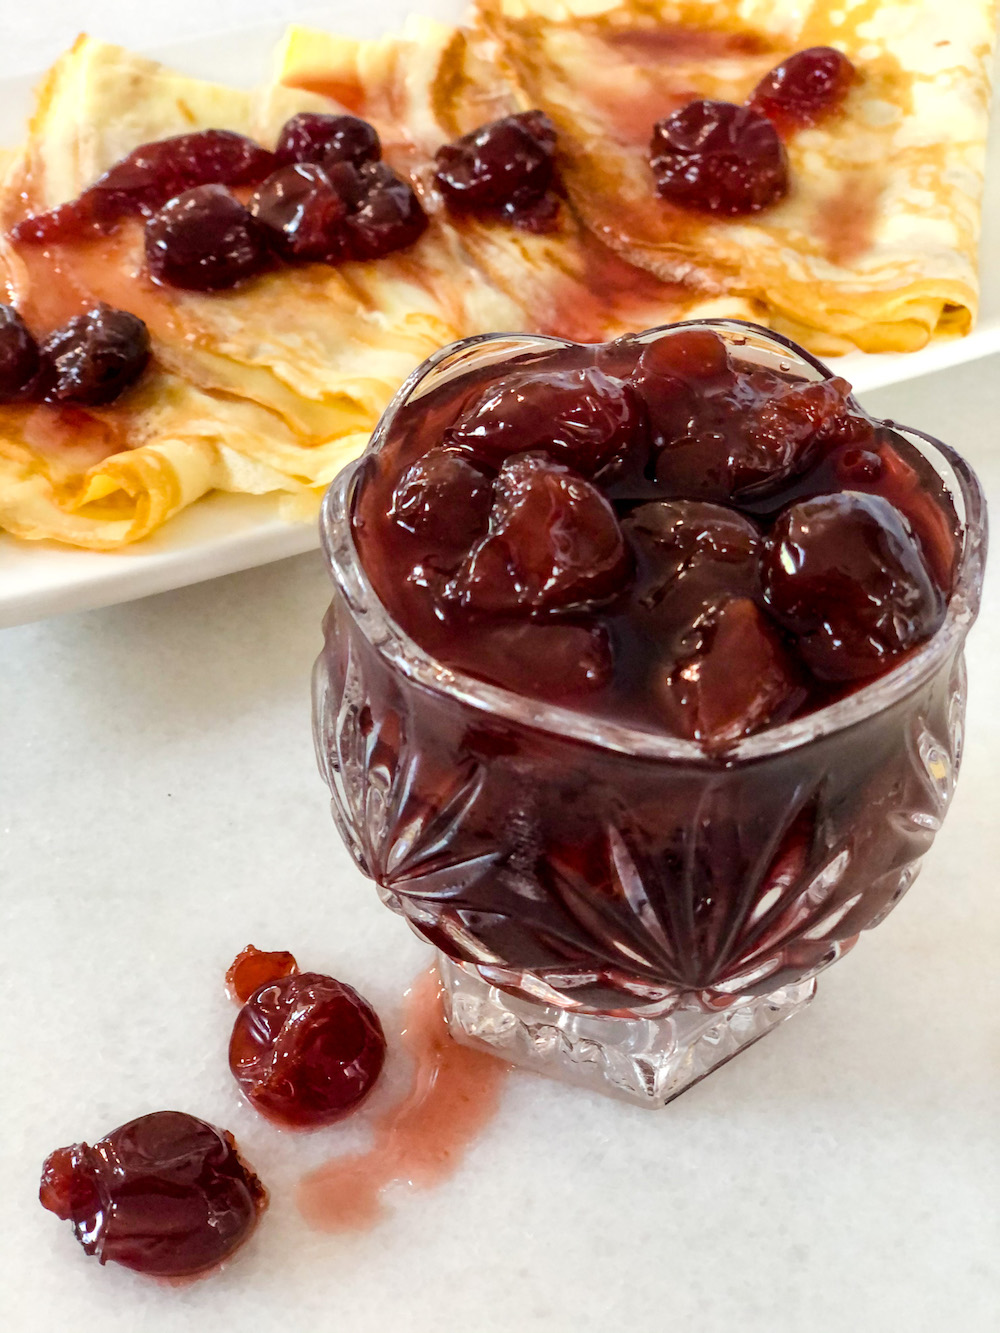 HOW TO MAKE HOMEMADE CHERRY JAM RECIPE